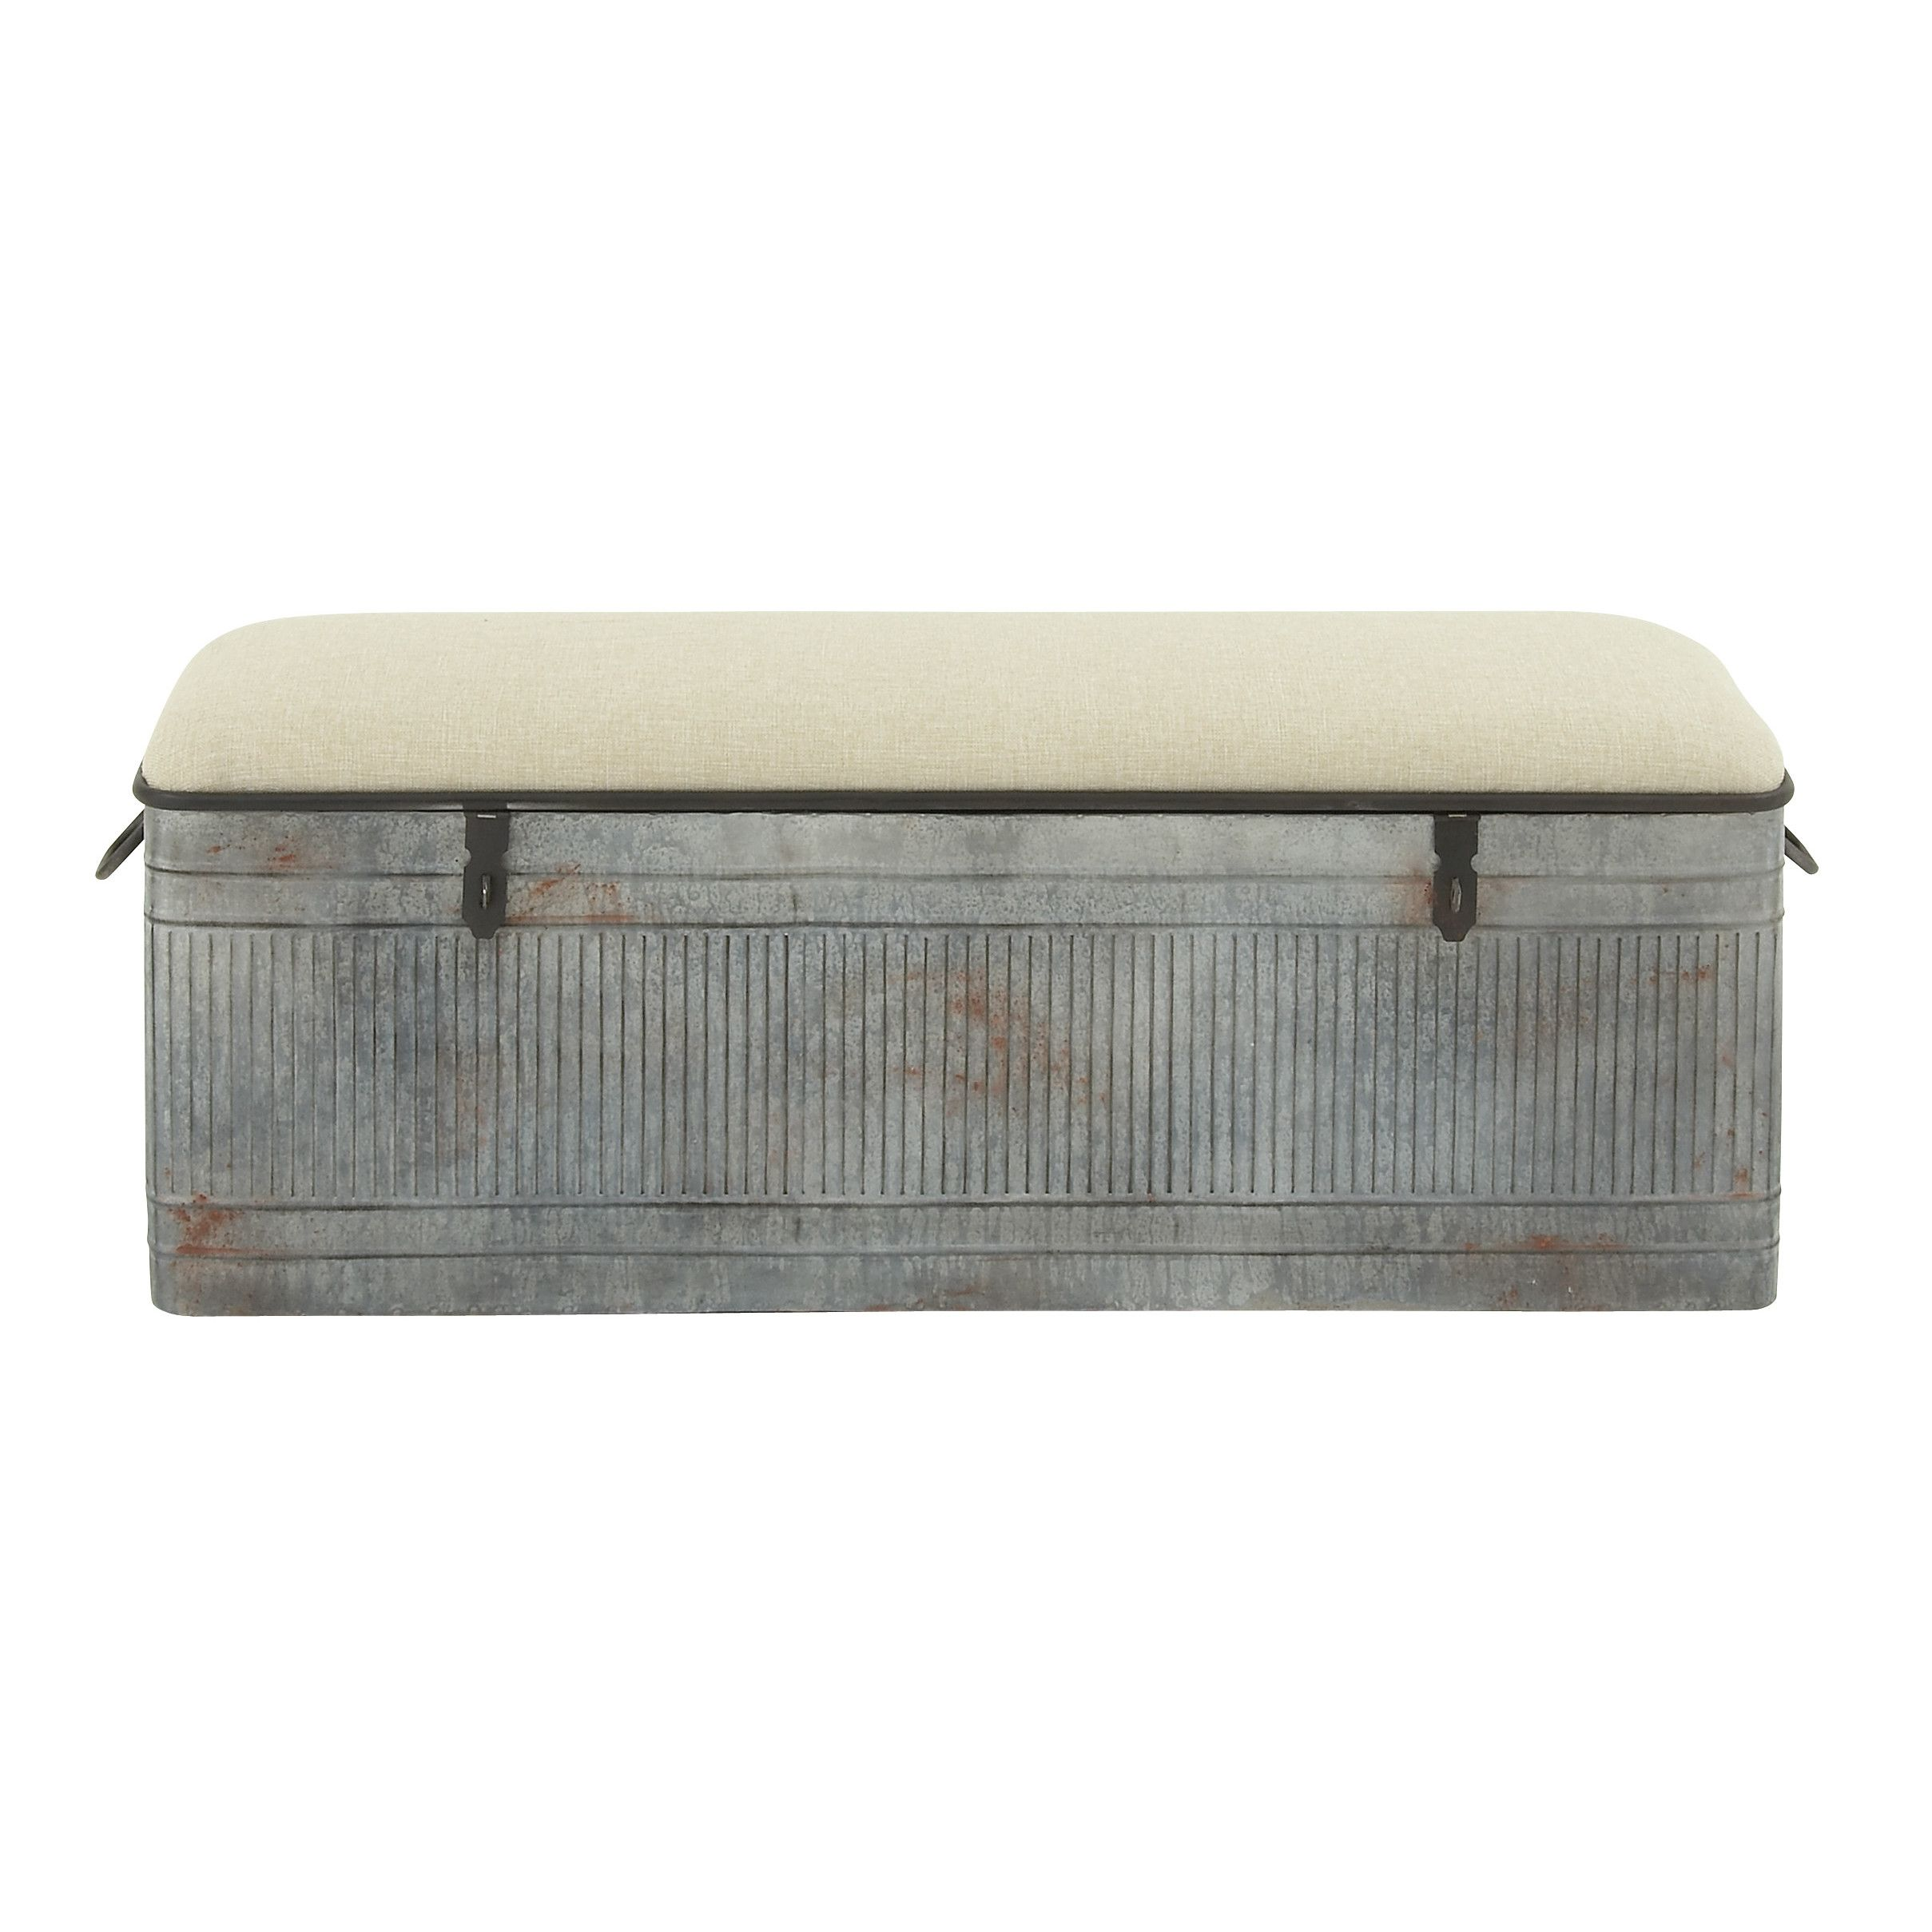 Dublin Upholstered Storage Bench Fabric Bench Upholstered